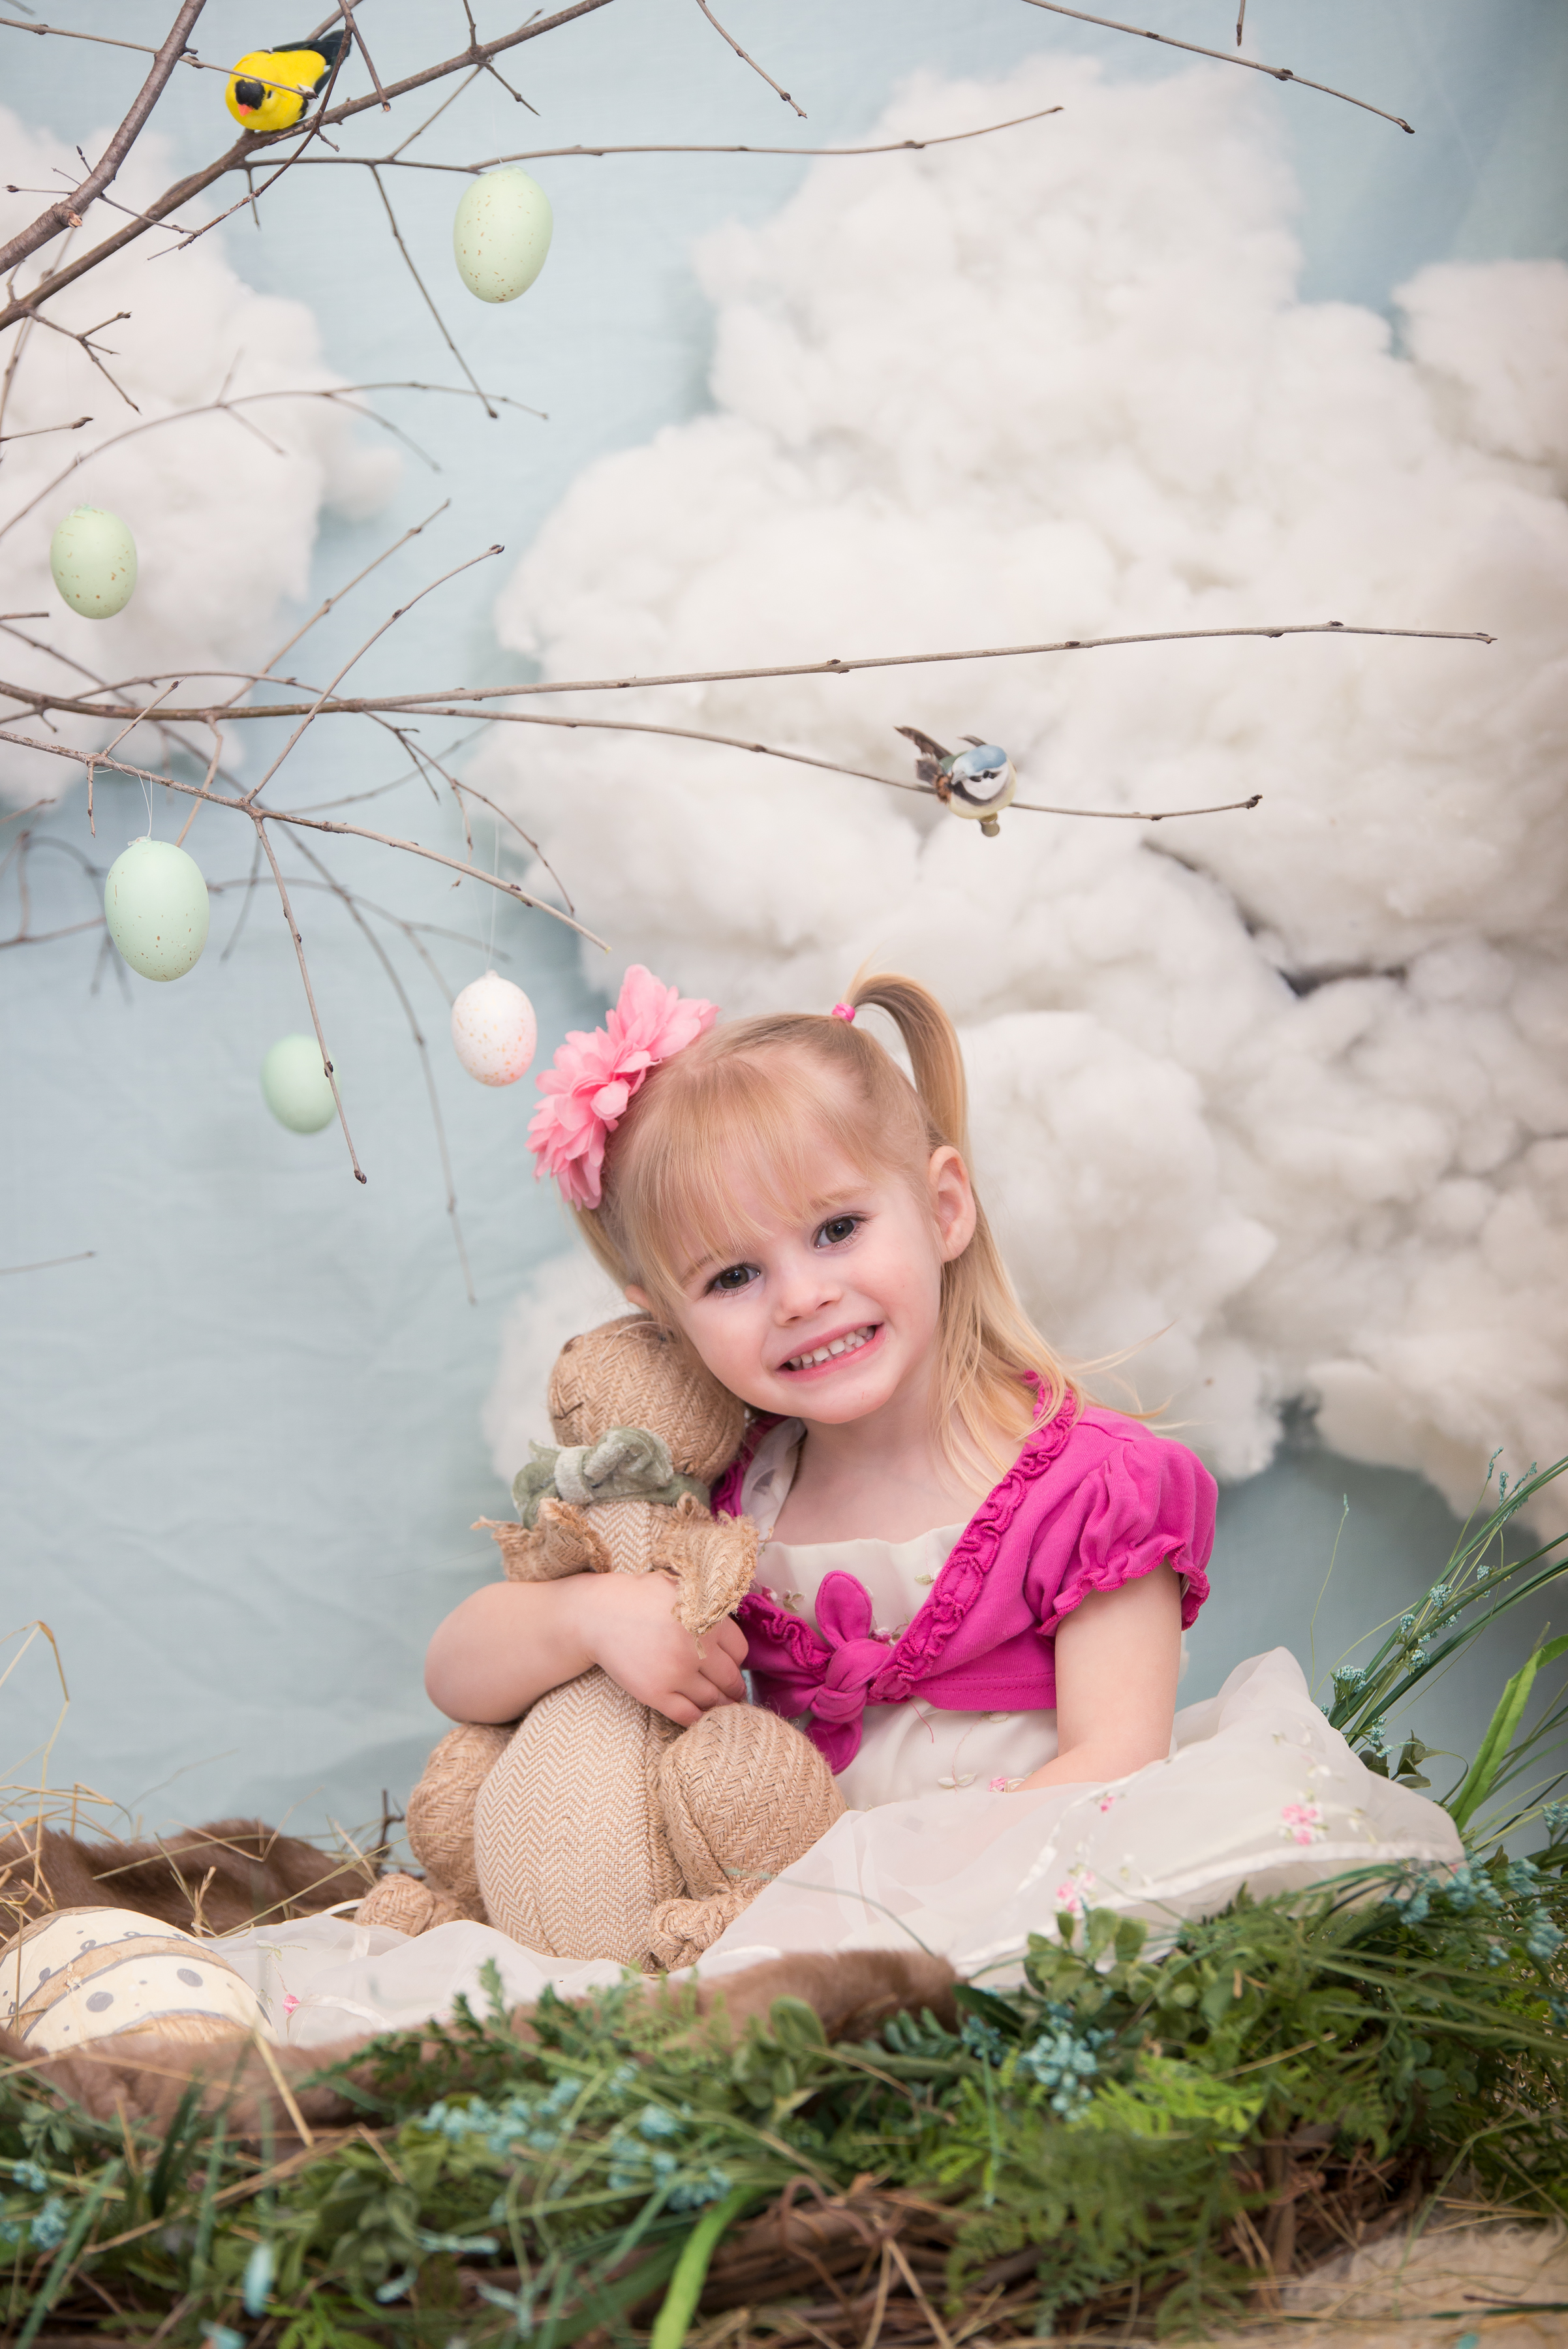 Naomi Lucienne Photography - Mini Session - 17033169.jpg